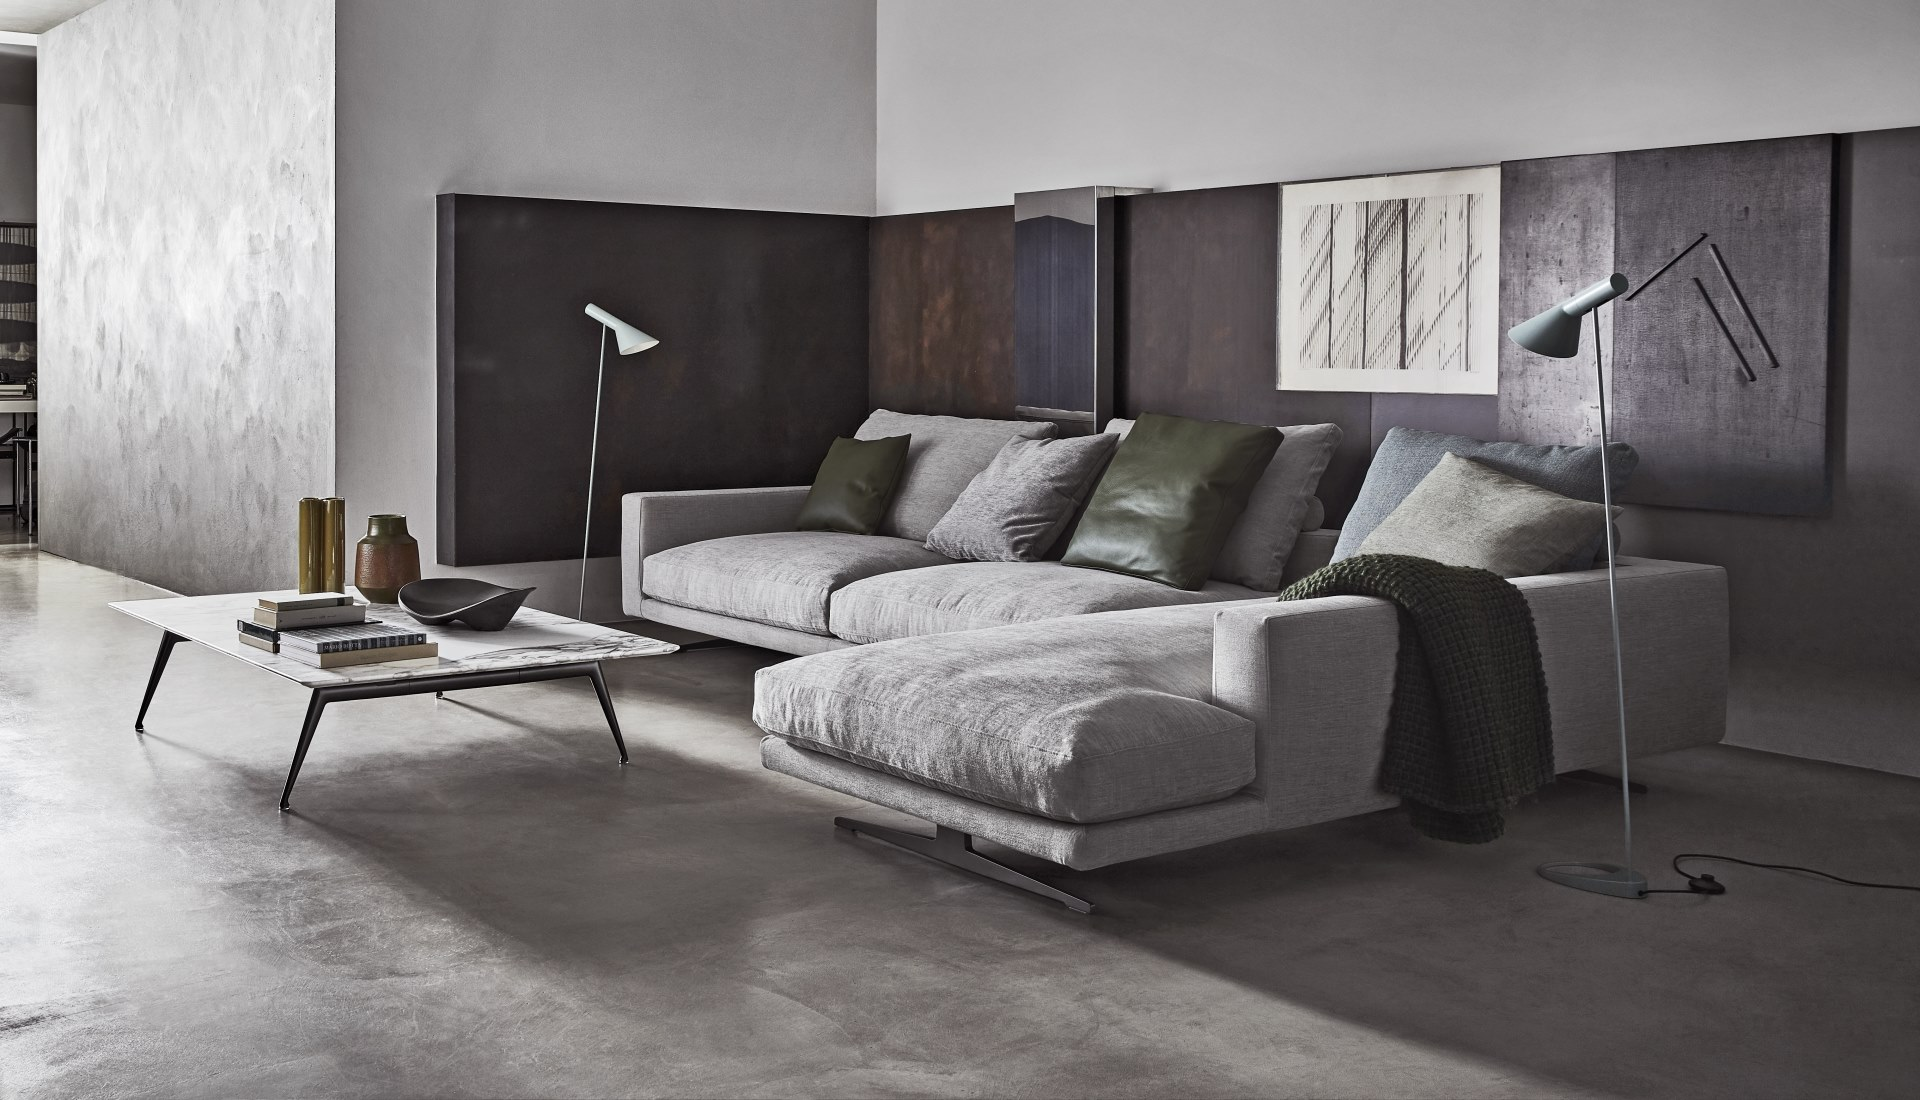 Luxurious and stylish living rooms featuring the Flexform Campiello modular sofa